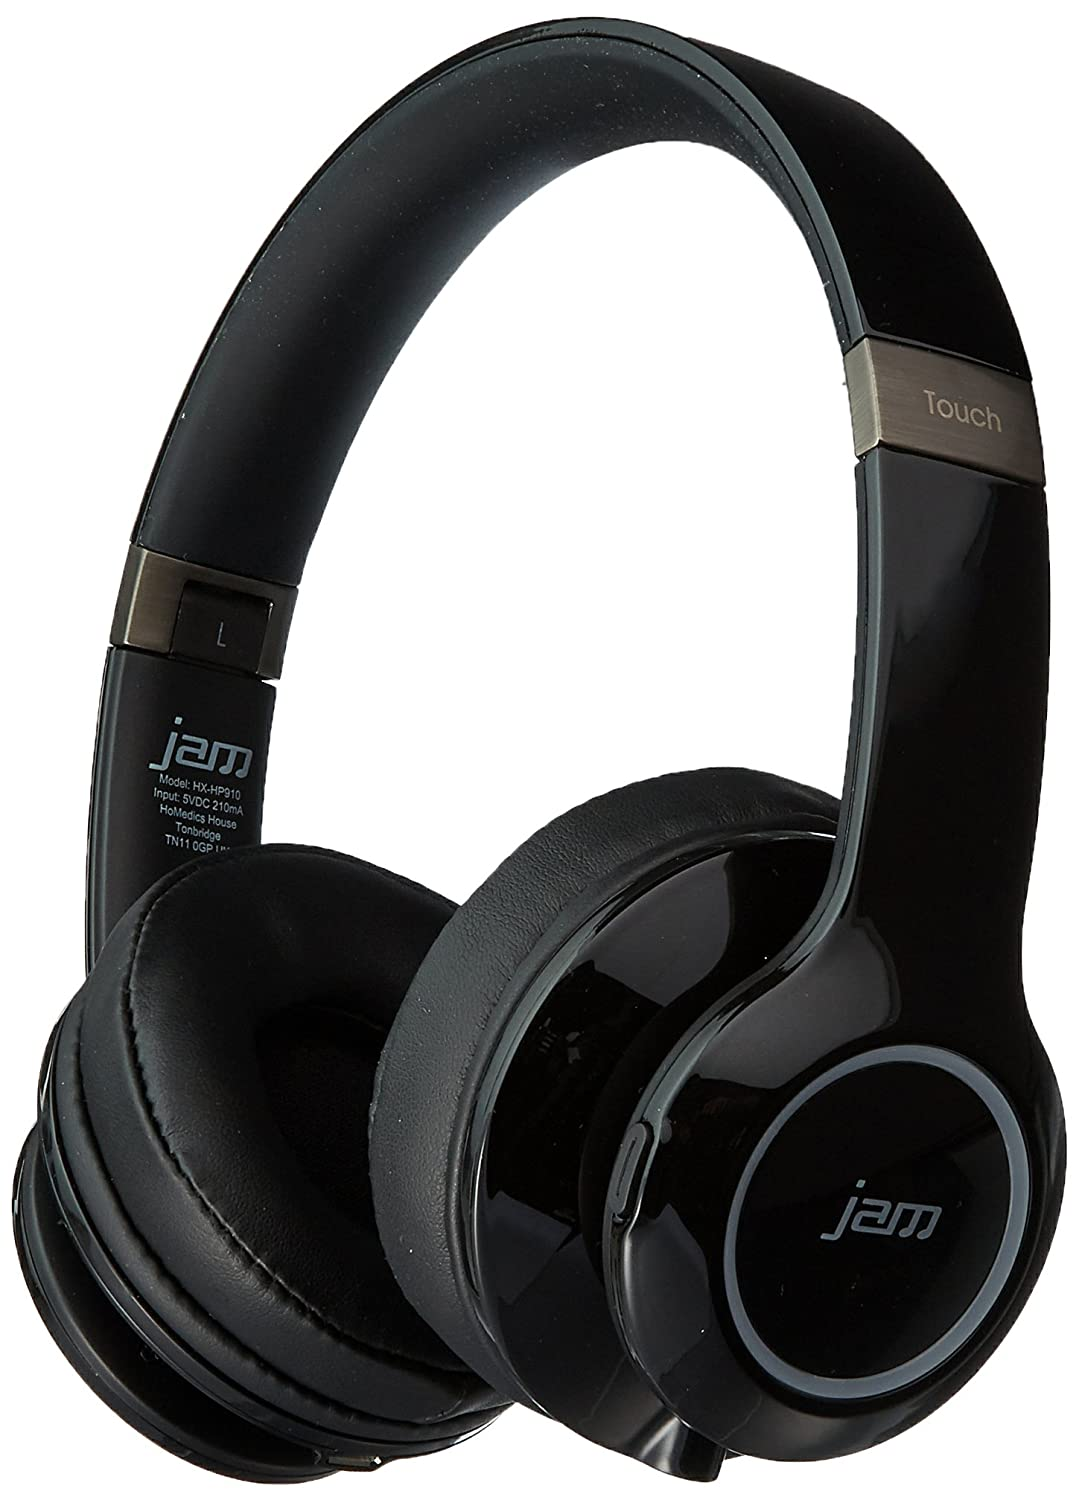 HMDX JAM Transit Touch Rechargeable Wireless Bluetooth Headphones/Headset